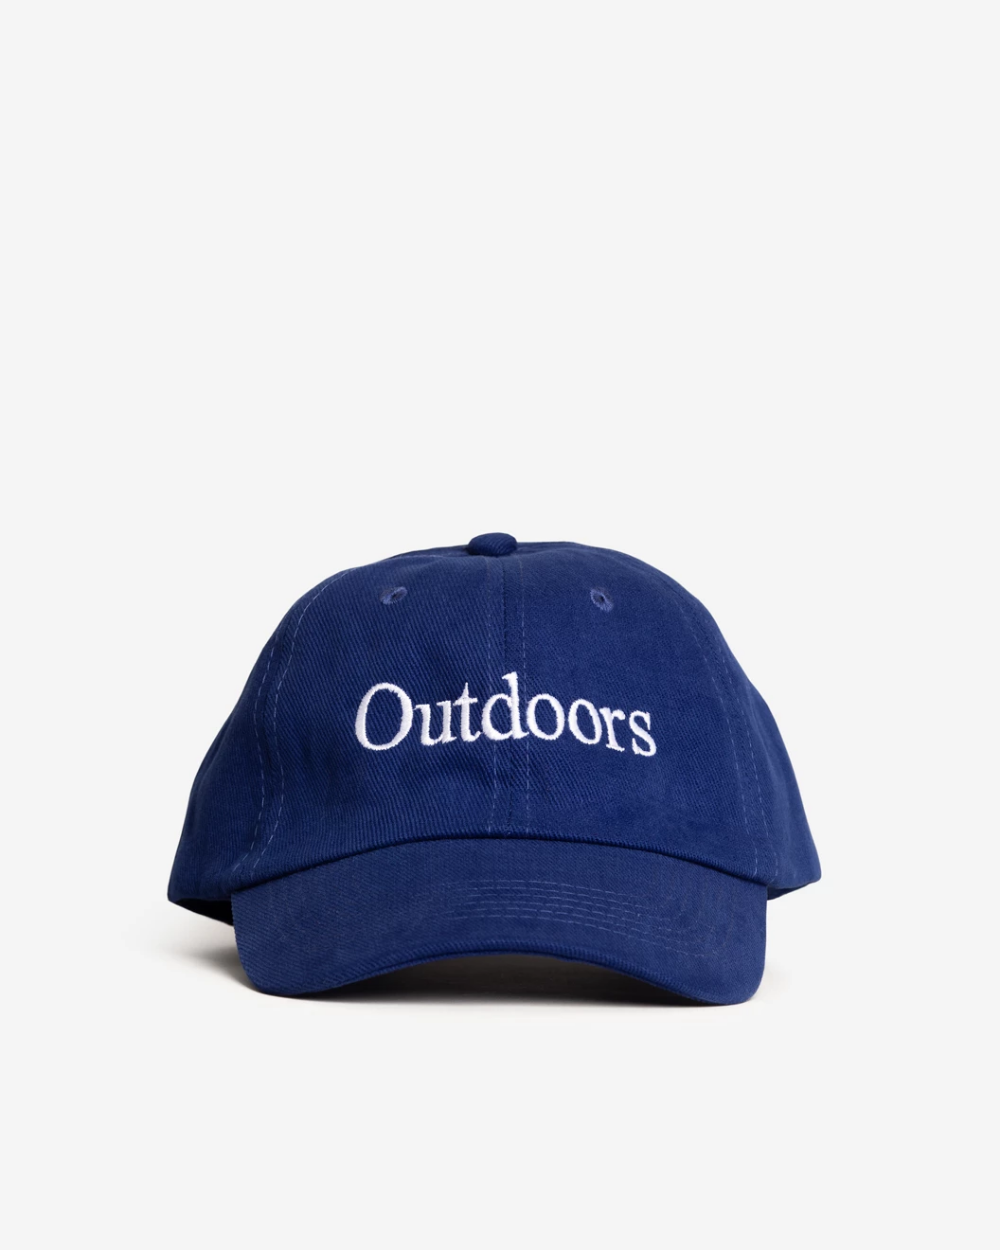 Outdoors Hat Hats Hat Design Refreshing Water